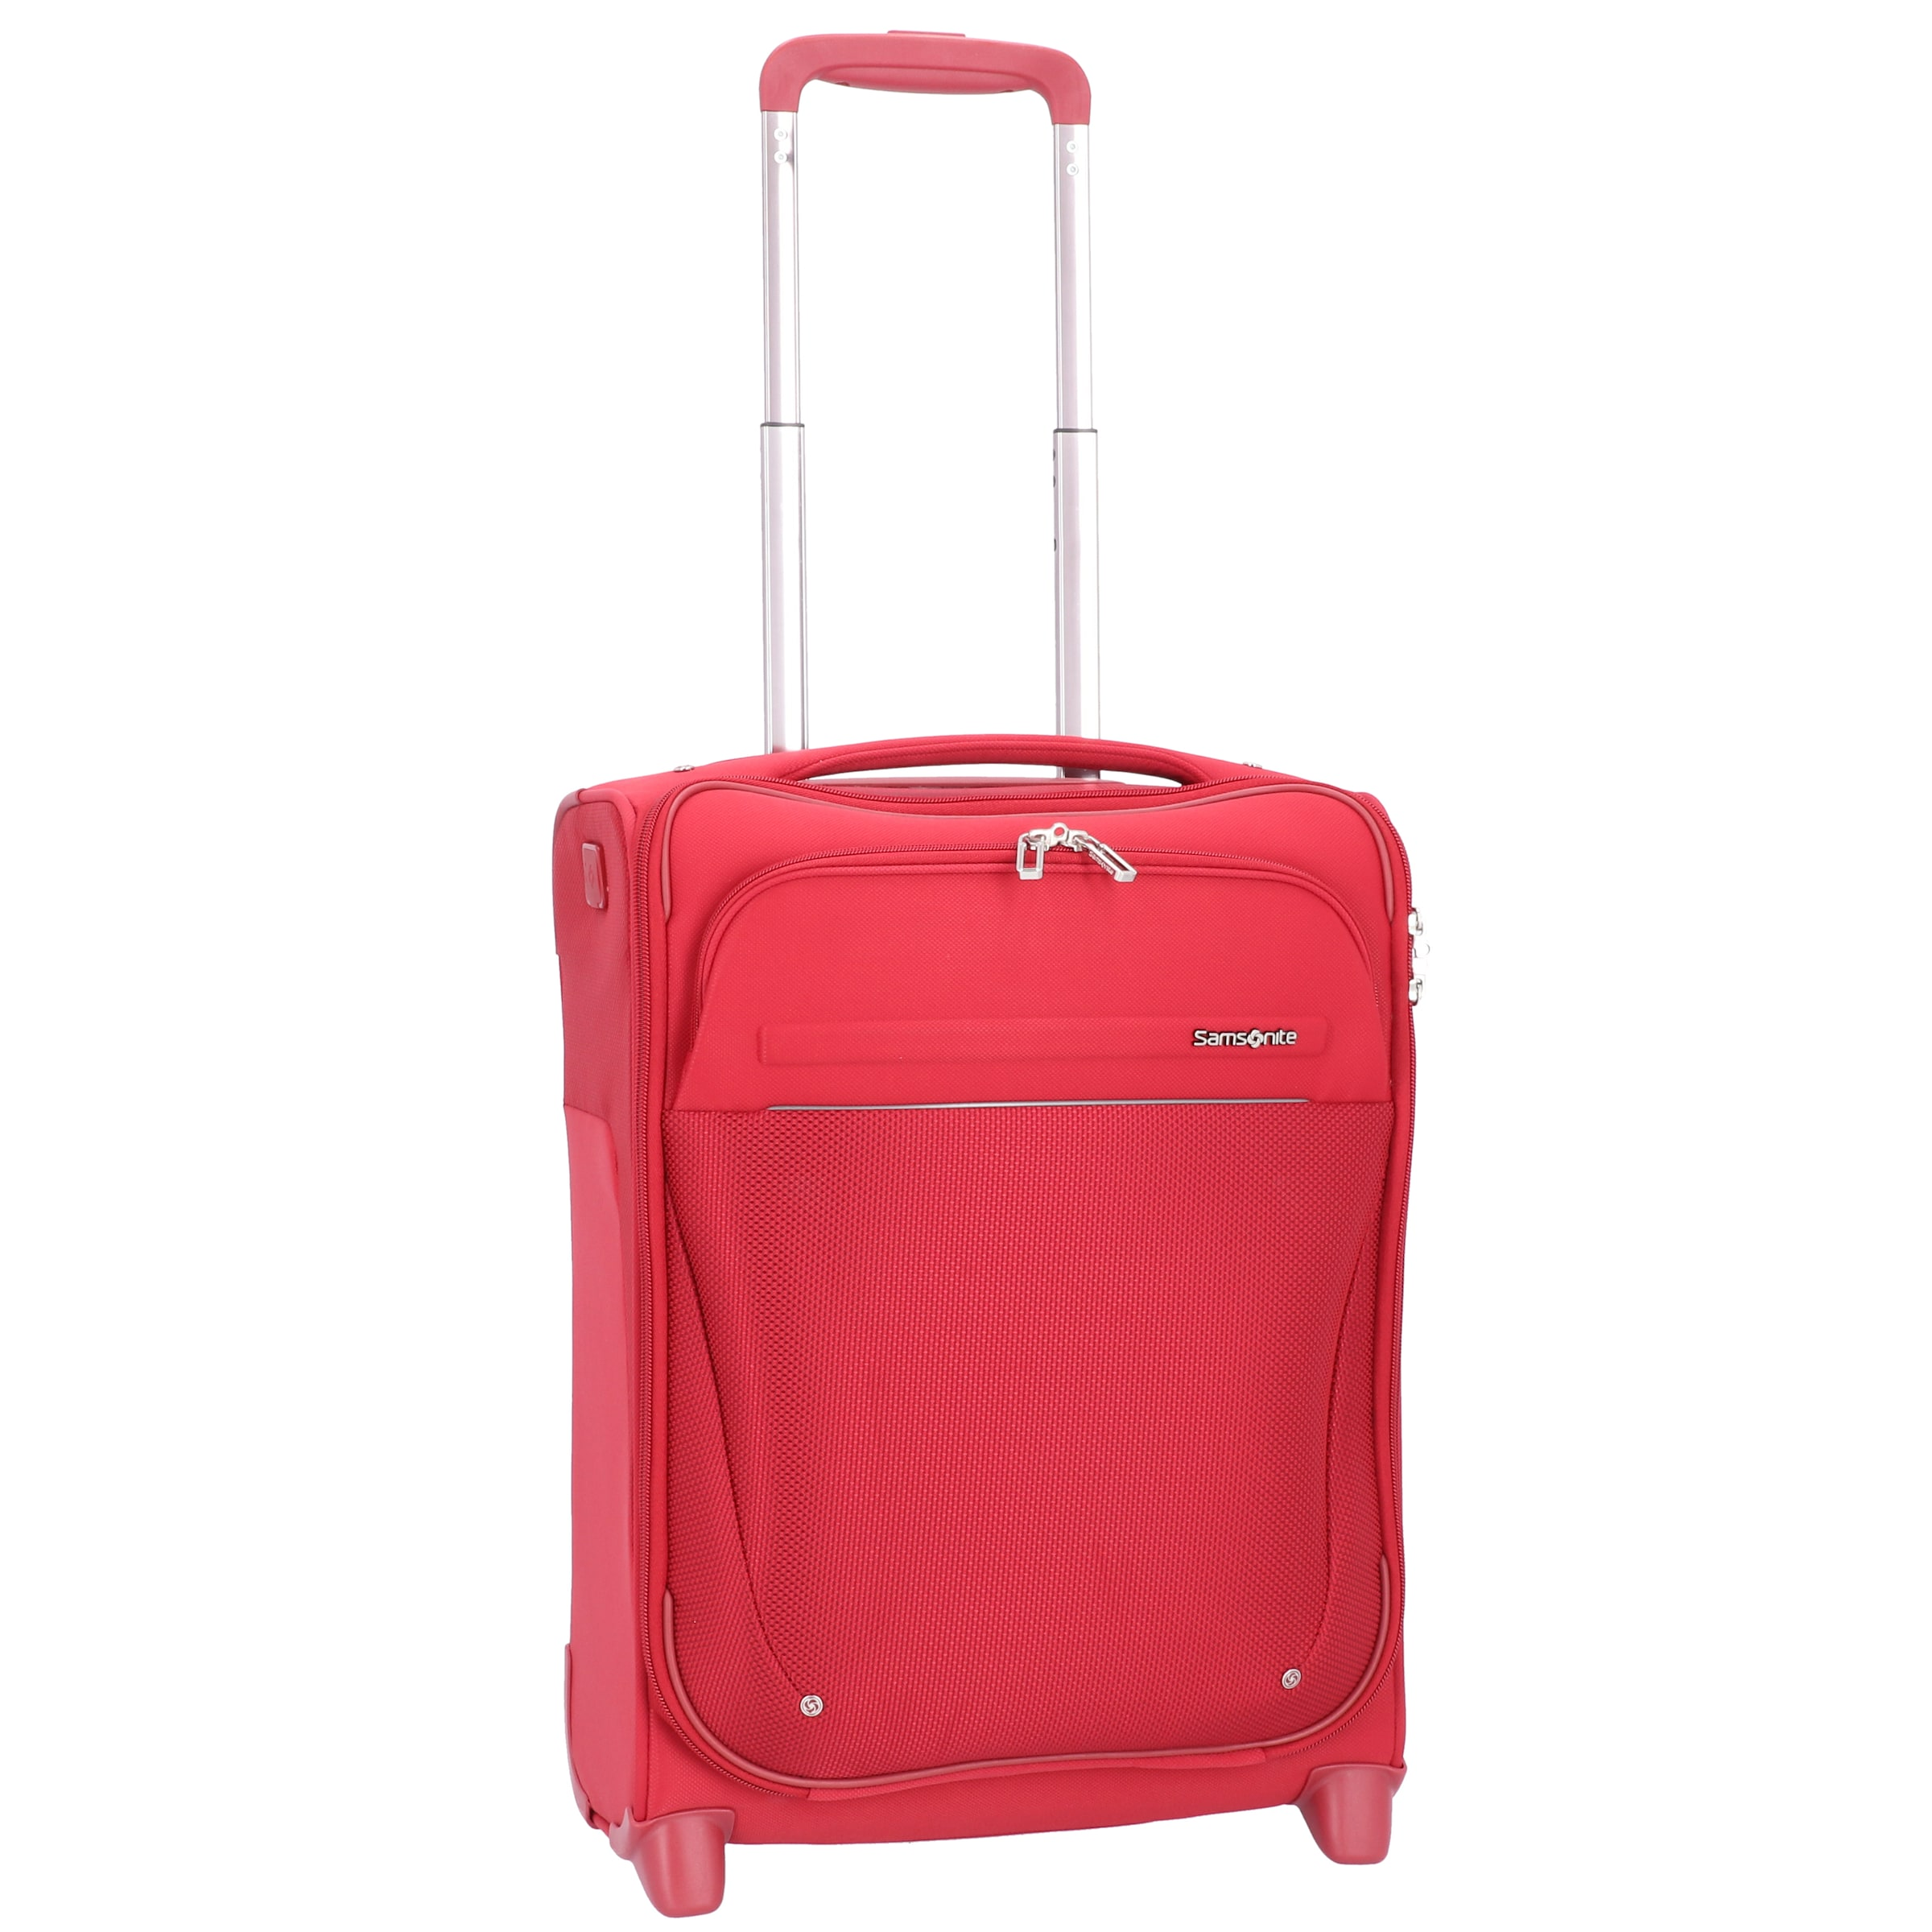 In Cm Rot Samsonite Kabinentrolley 45 ikPuXZ